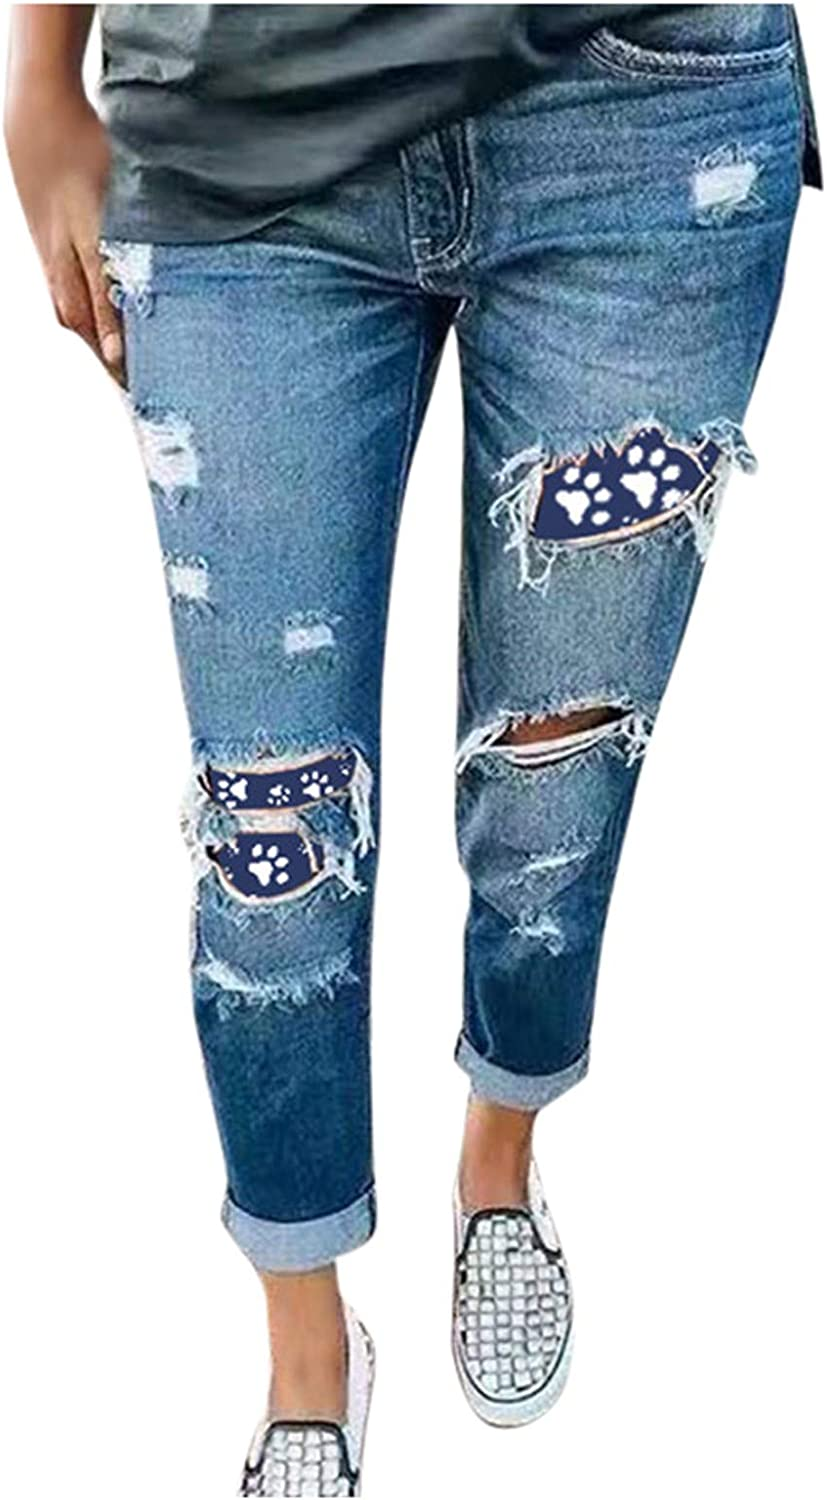 Casual Ripped Jeans for Women Cat Paw Print Blue Denim Jeans Trendy Plus Size Trousers for Youth